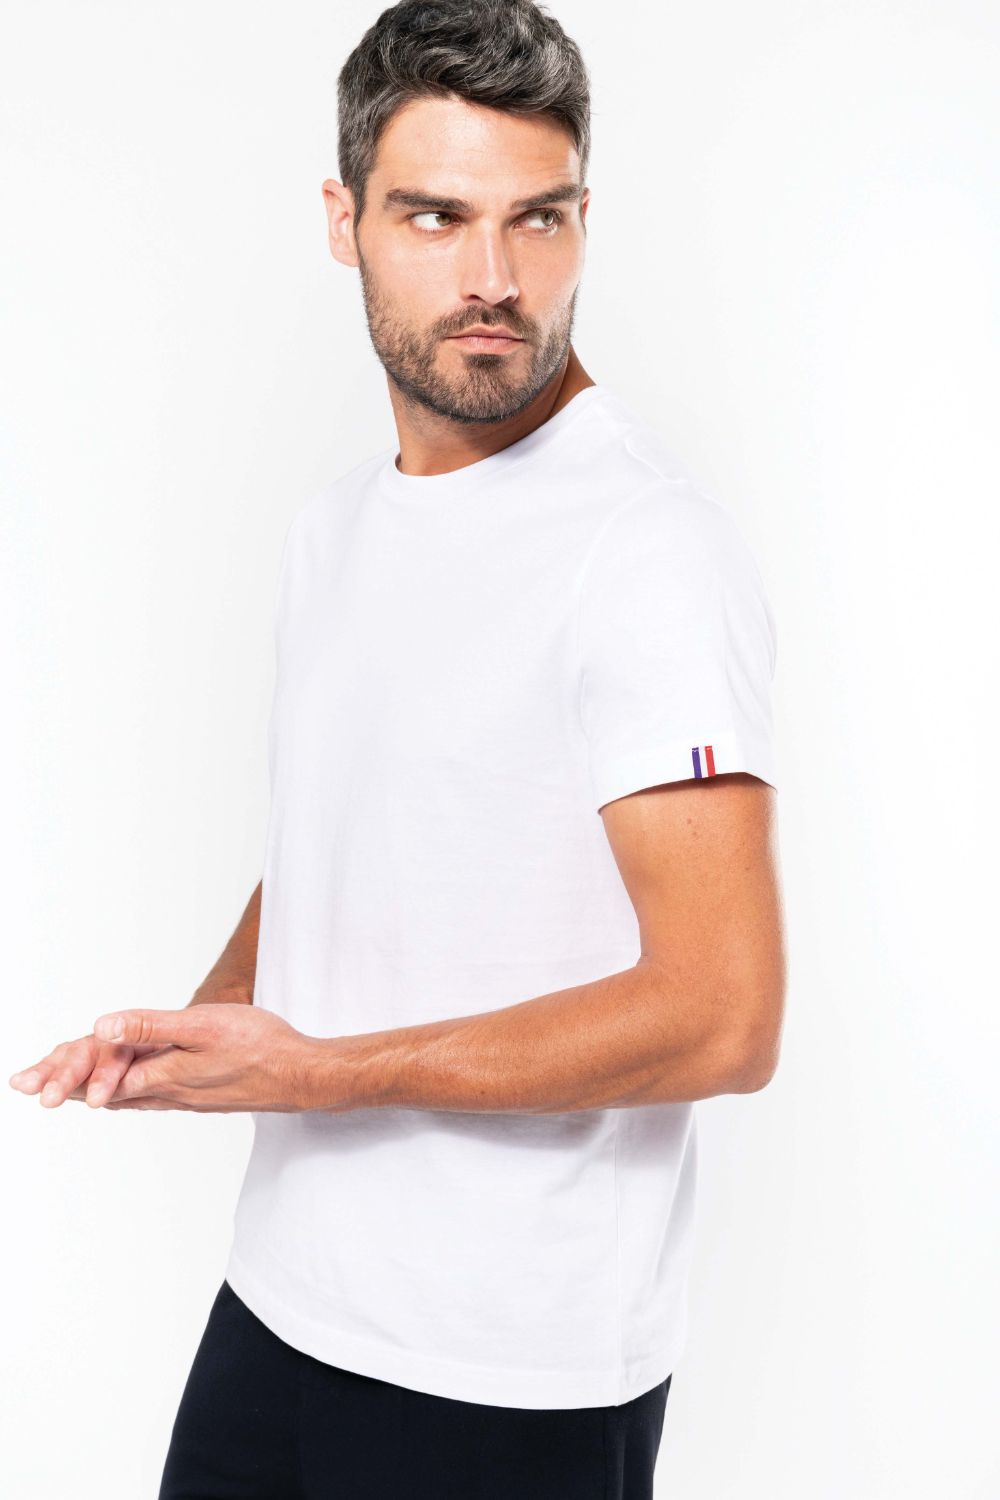 t-shirt promotionnel coton bio france pour homme